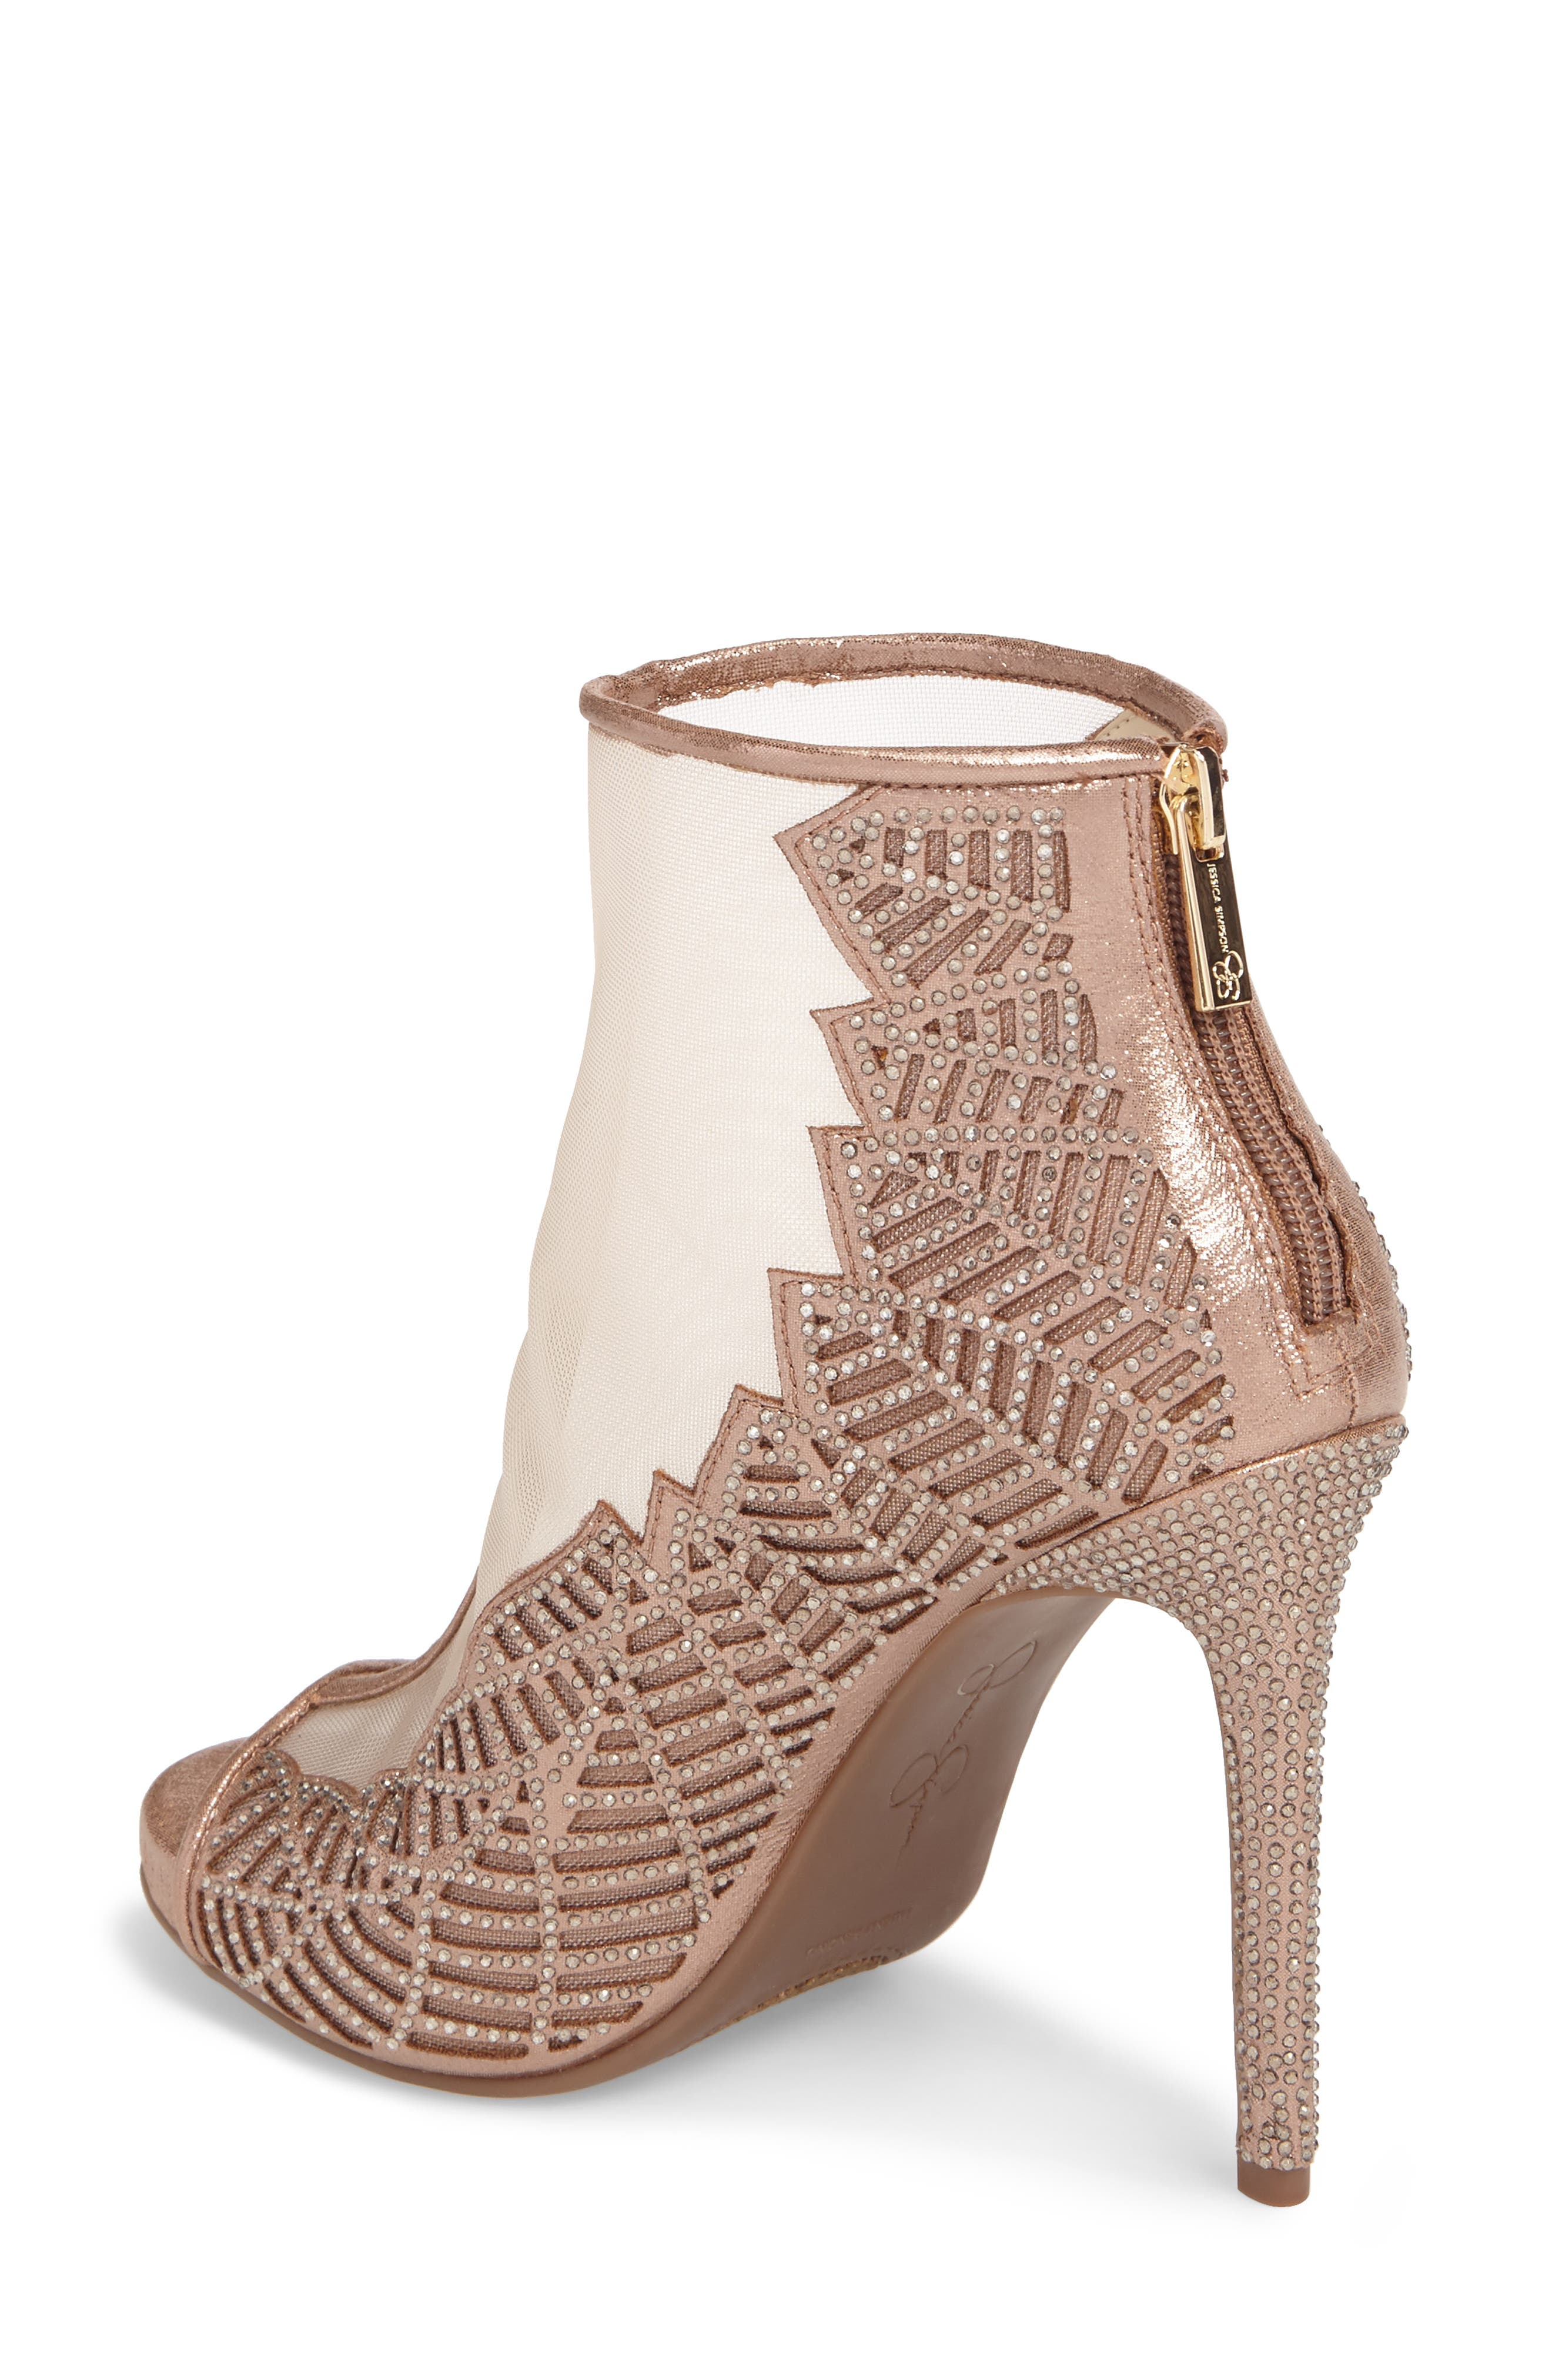 Radko Embellished Sandal,                             Alternate thumbnail 2, color,                             Light Sheer Mesh